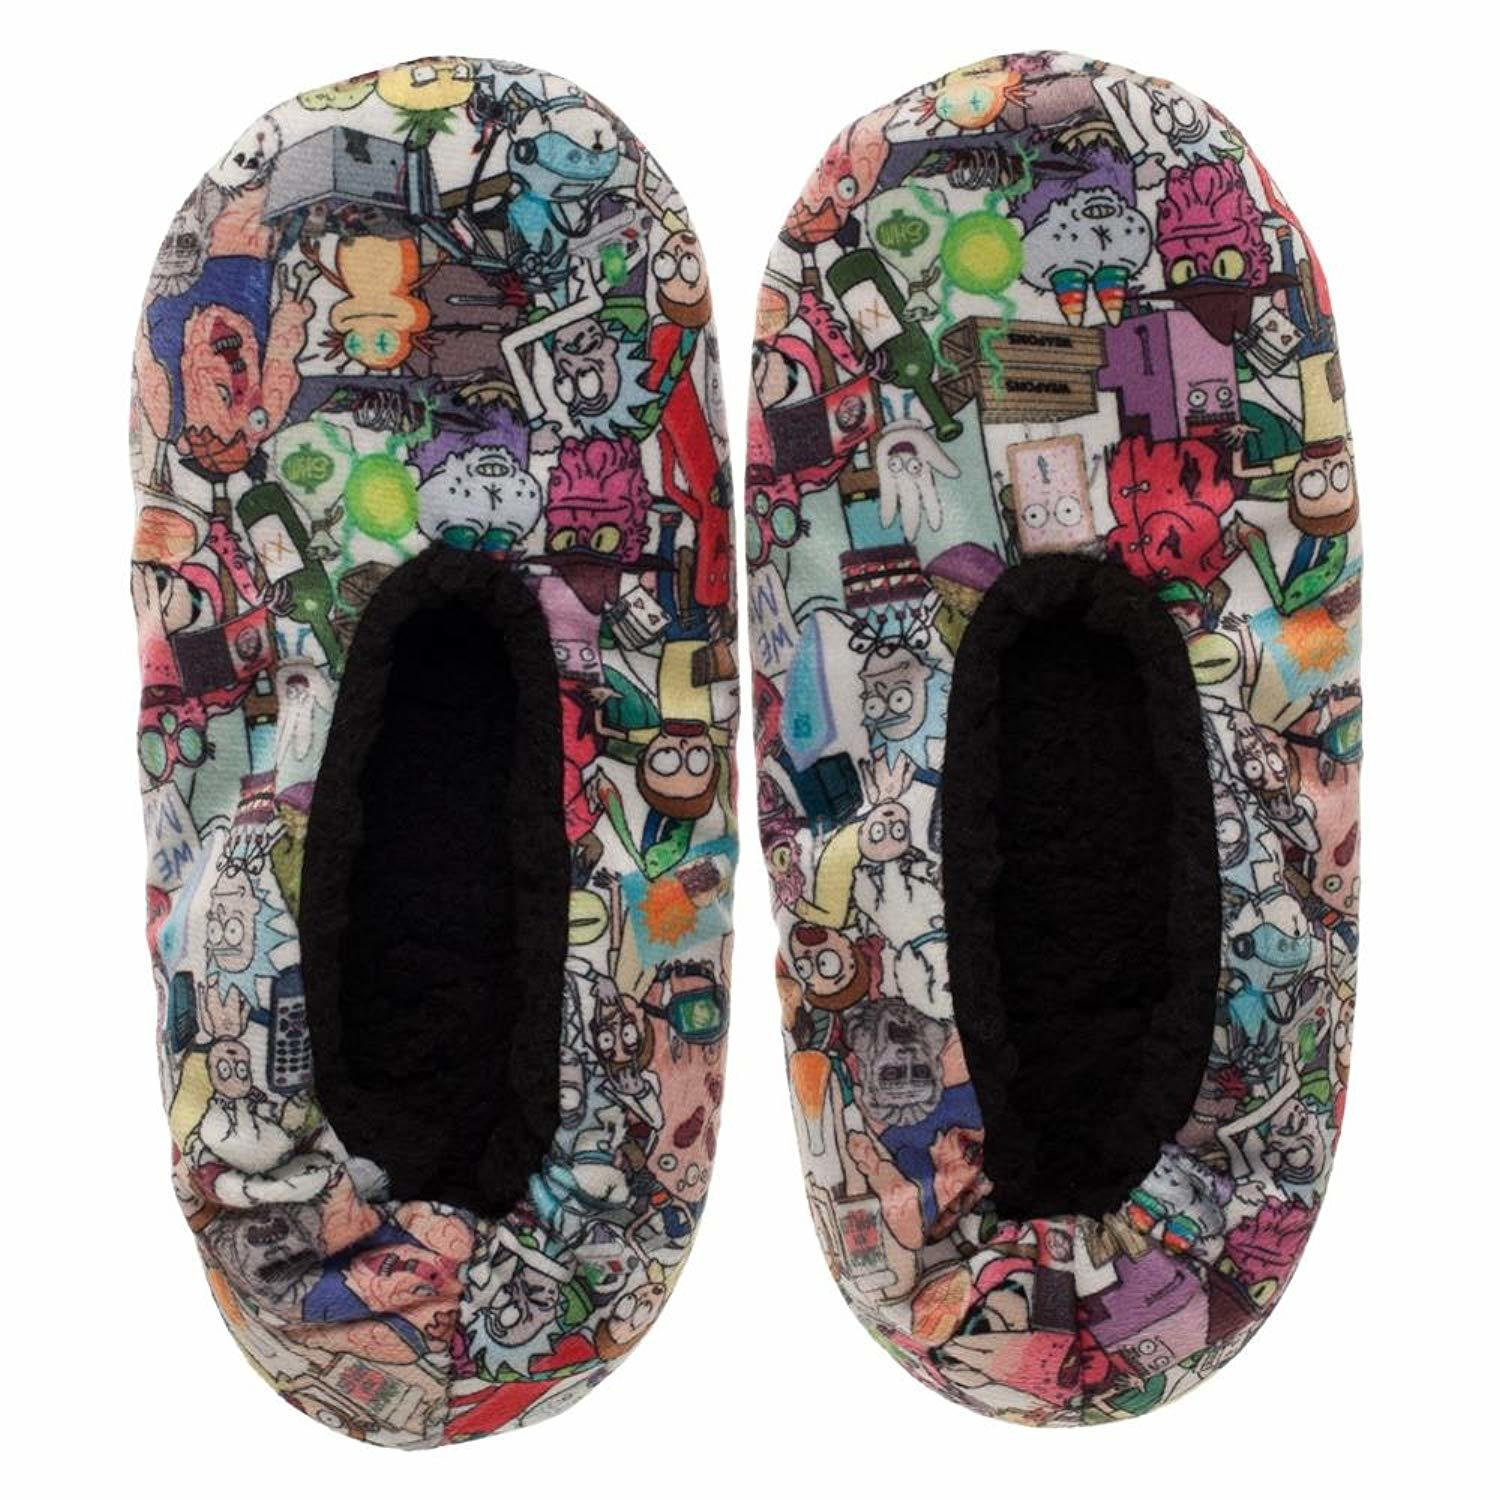 Rick and Morty - Women's Cozeez Slippers -White (S/M) image